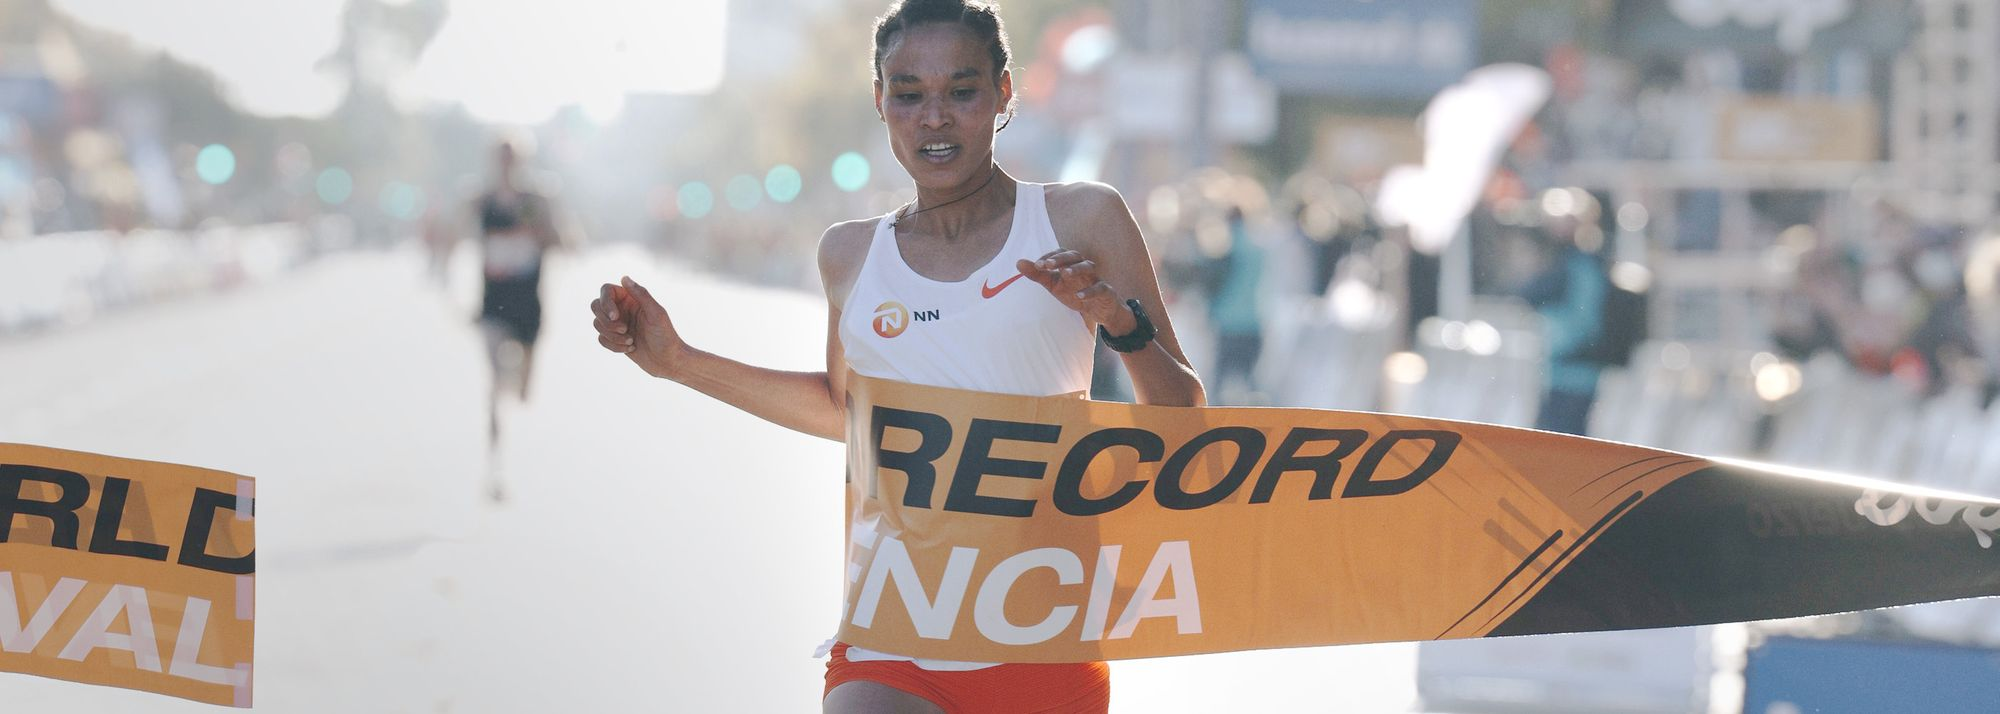 World and Olympic medallist adds half marathon mark to her world records for 5000m and 10,000m